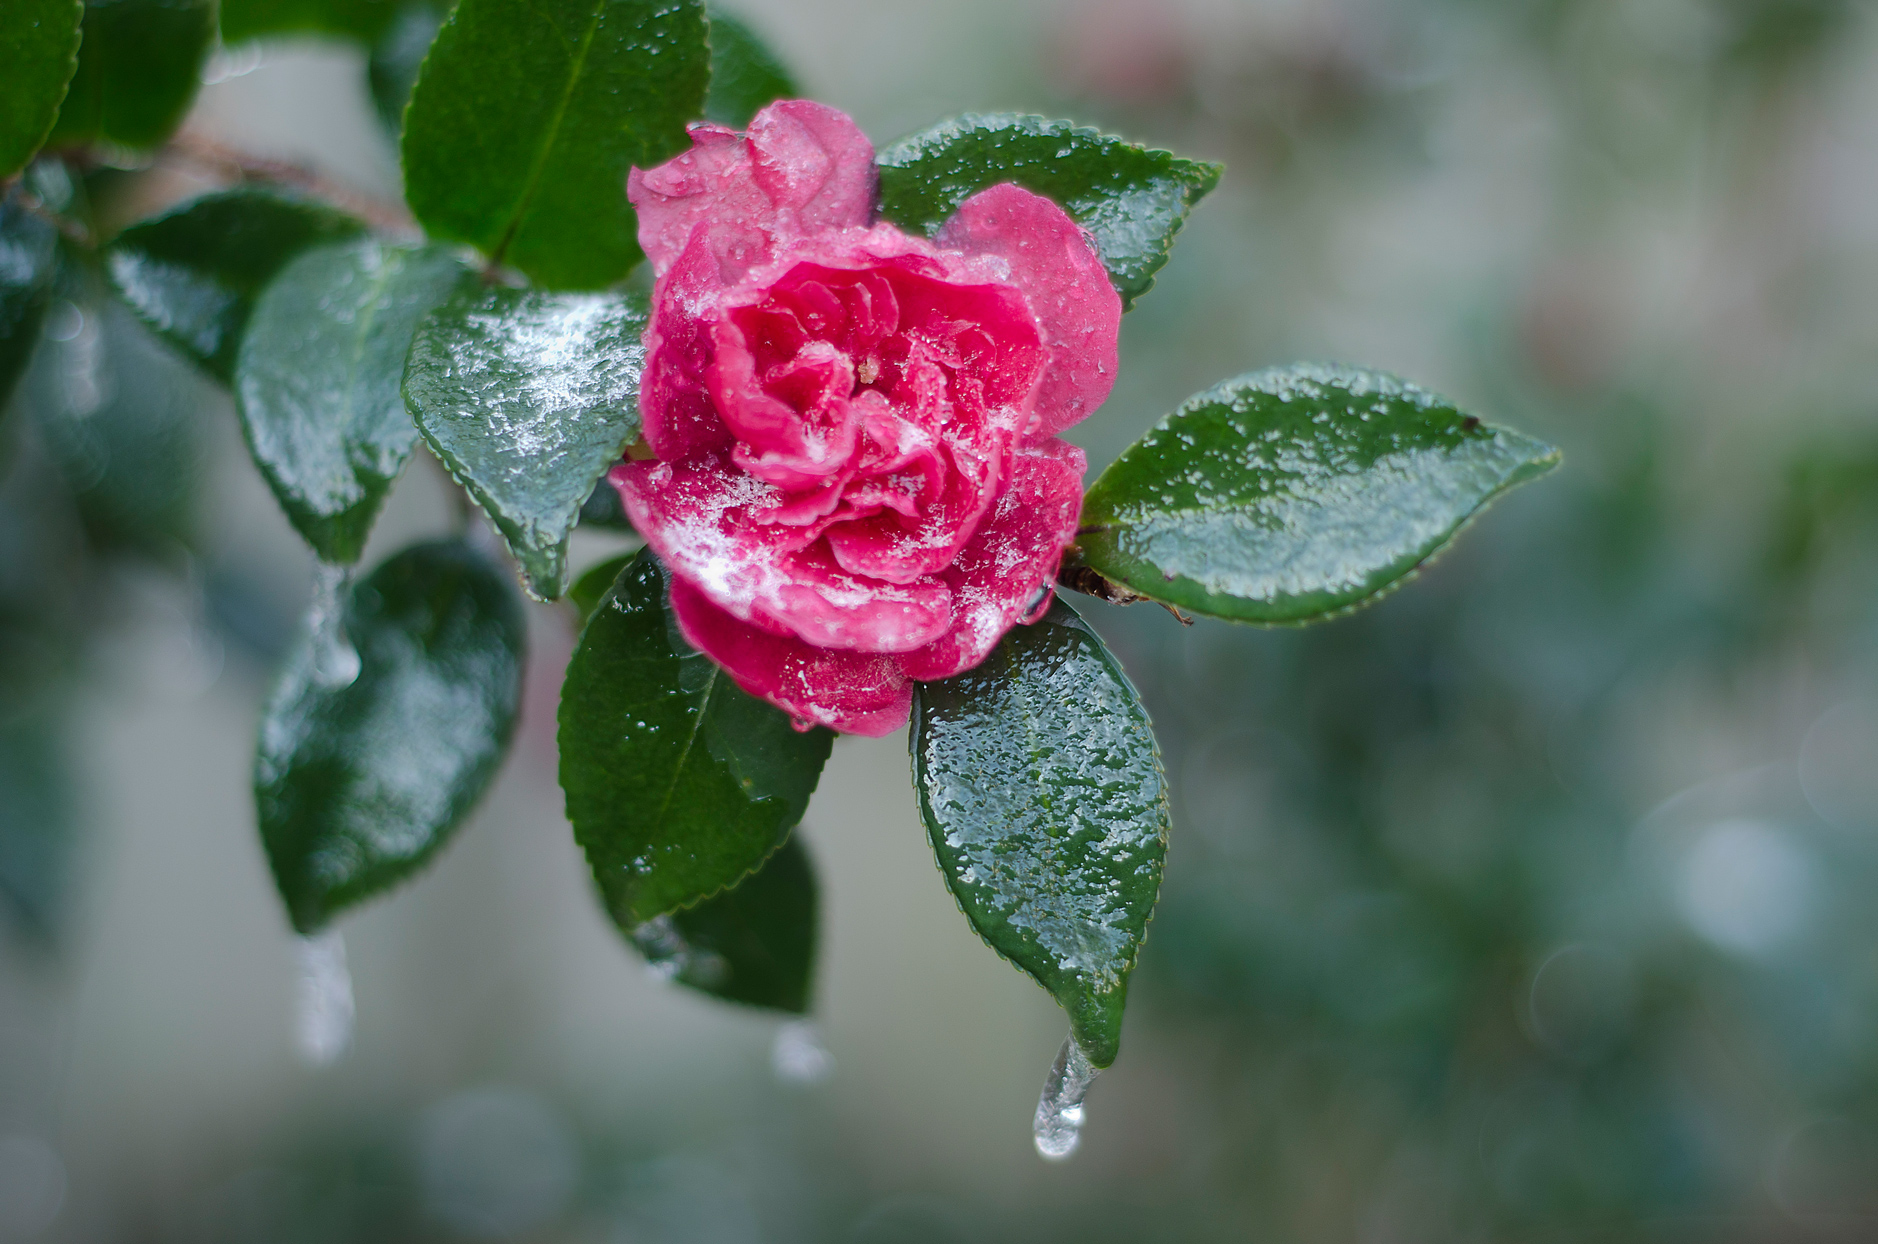 ice-covered pink camellia flower